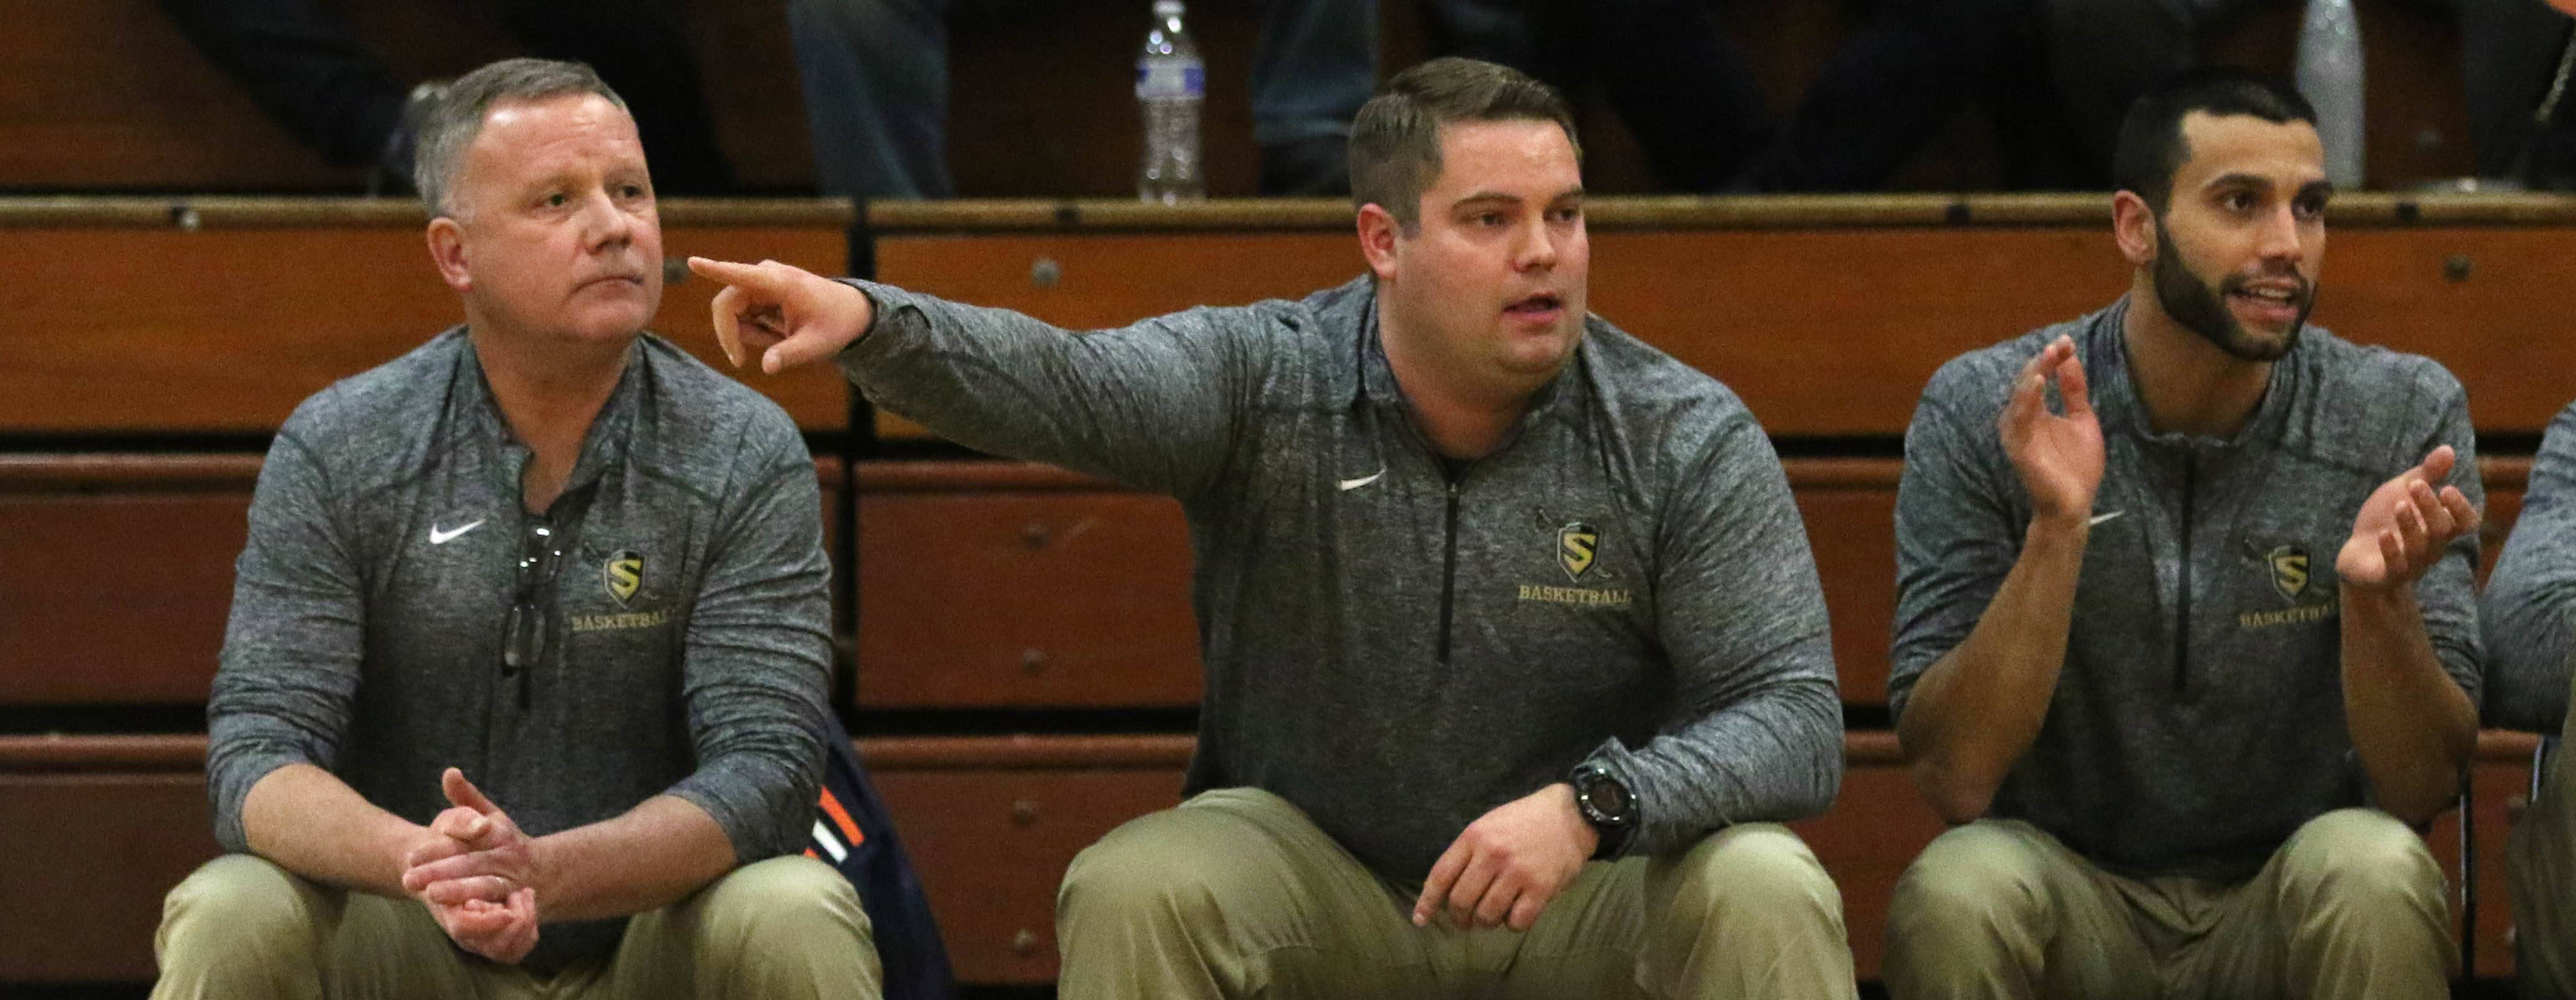 Streamwood coaches Kent Payne and his son Cully along with assistant Nick Neari monitor the action against St. Charles East during varsity boys basketball at St. Charles on Tuesday night.